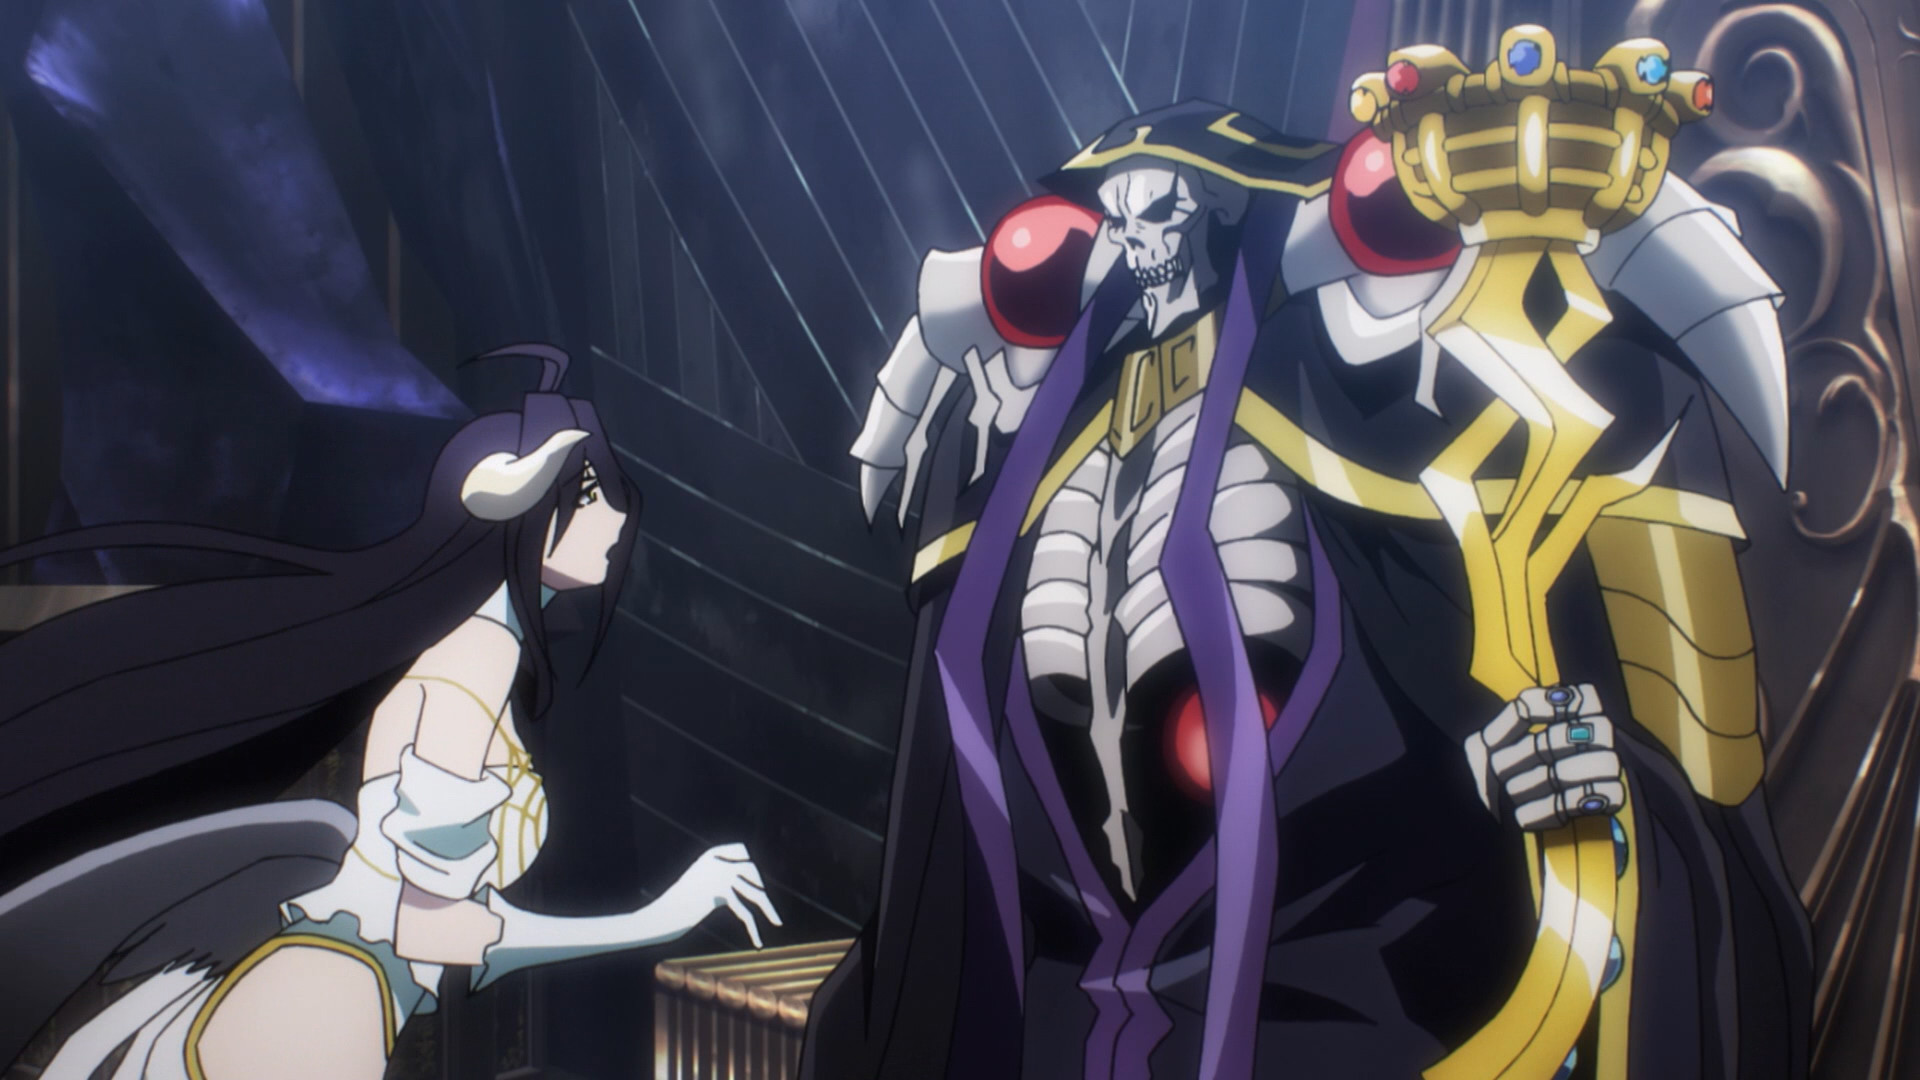 Res: 1920x1080, Albedo and Ainz Ooal Gown, Ainz Ooal Gown (Right) with Albedo (Left